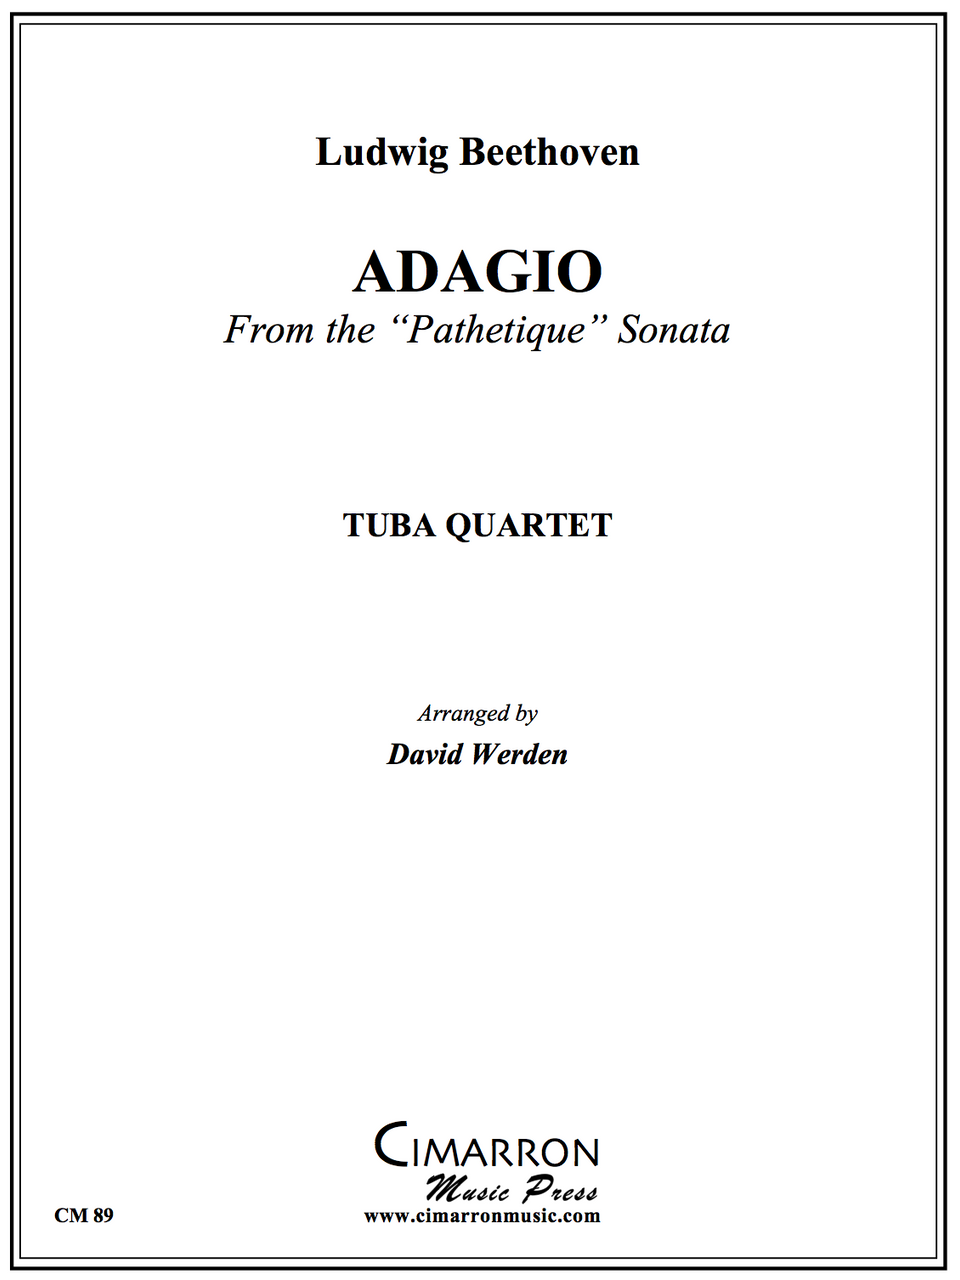 Beethoven - Adagio from Pathetique Sonata - Tuba Quartet